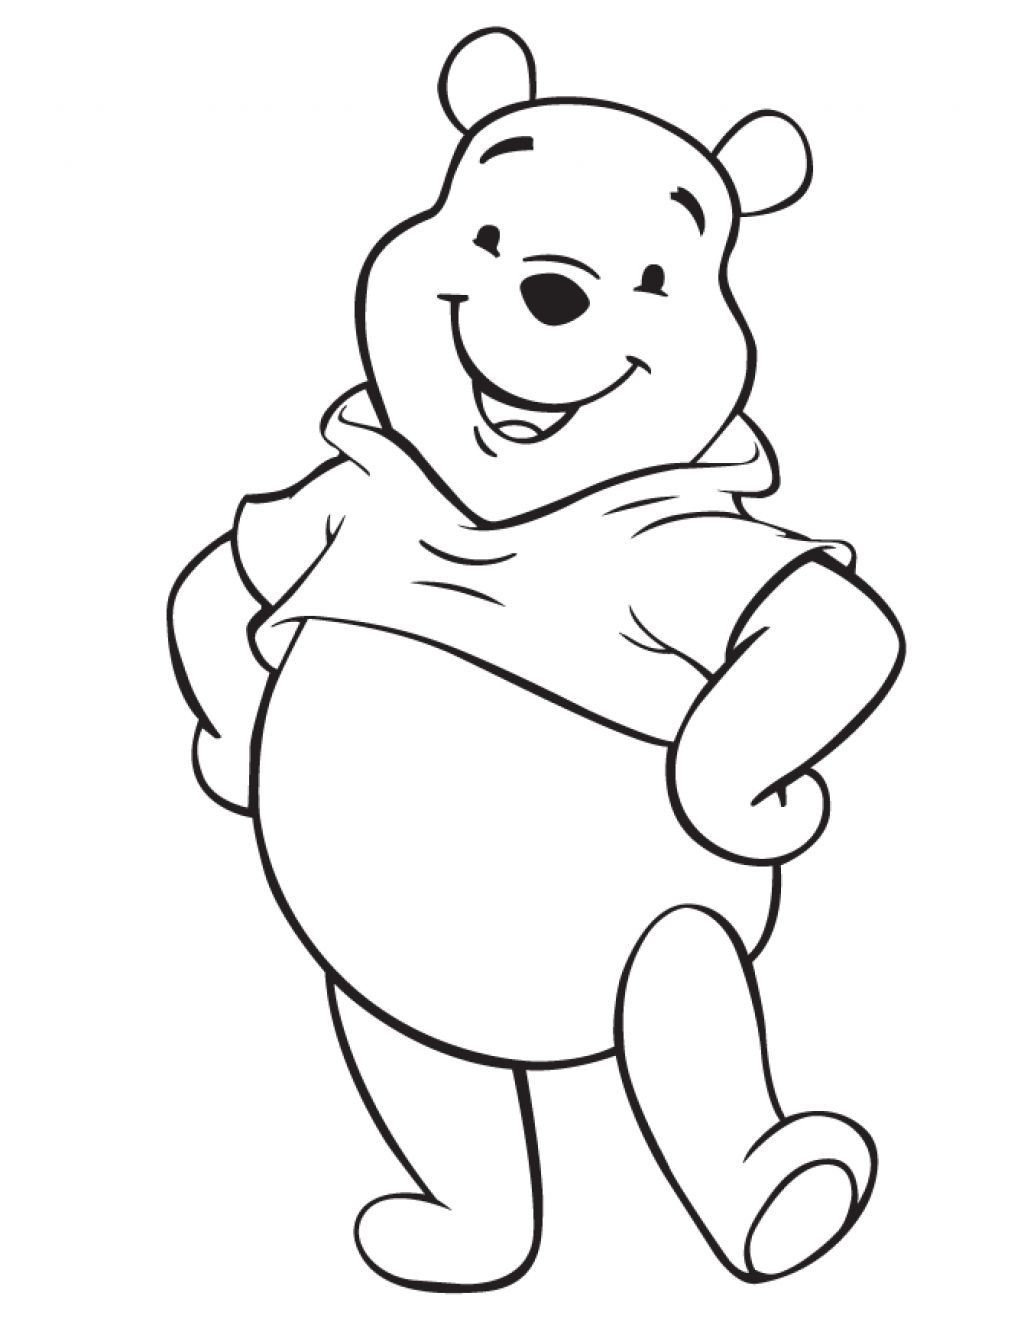 cartoon character coloring pages # 1